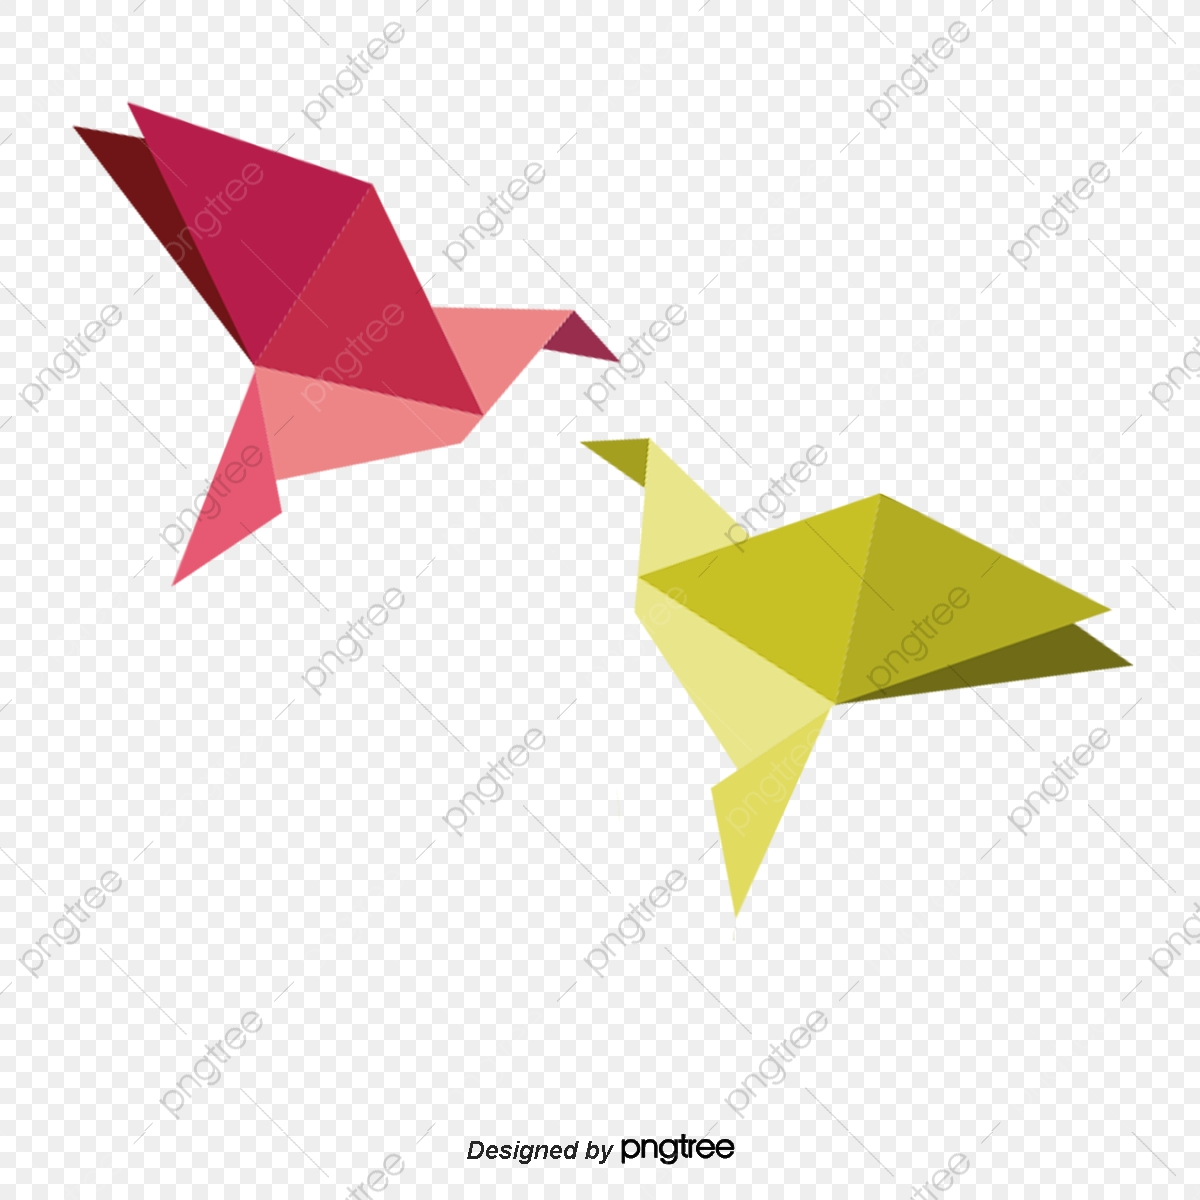 Step by step instructions how to make origami a bird. | 1200x1200